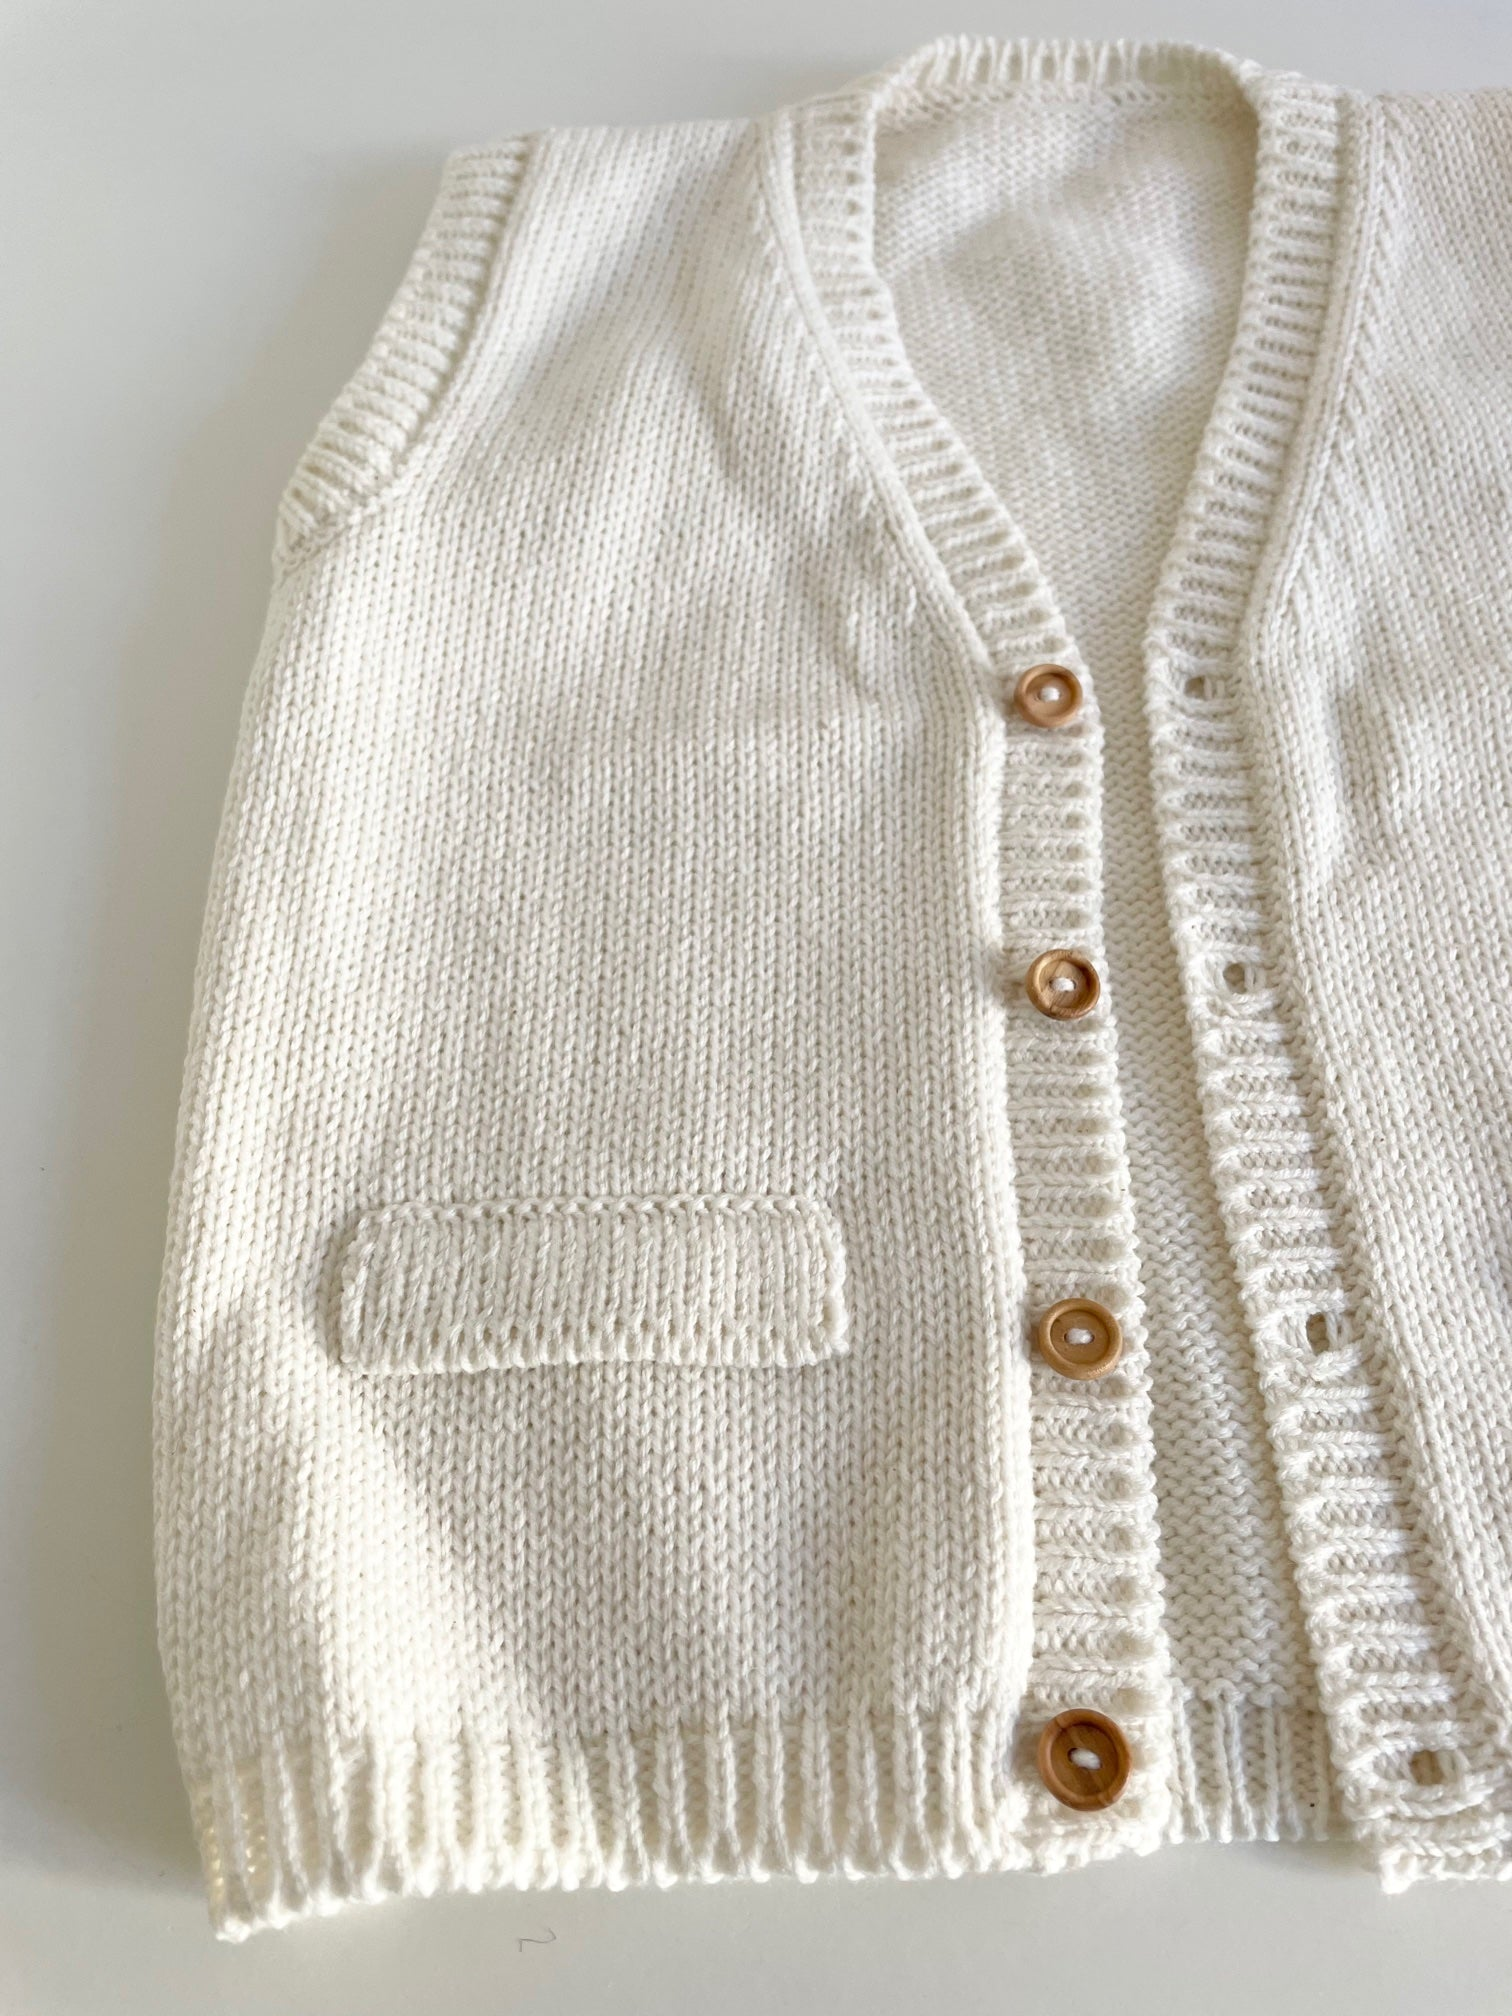 Knit vest - made by order